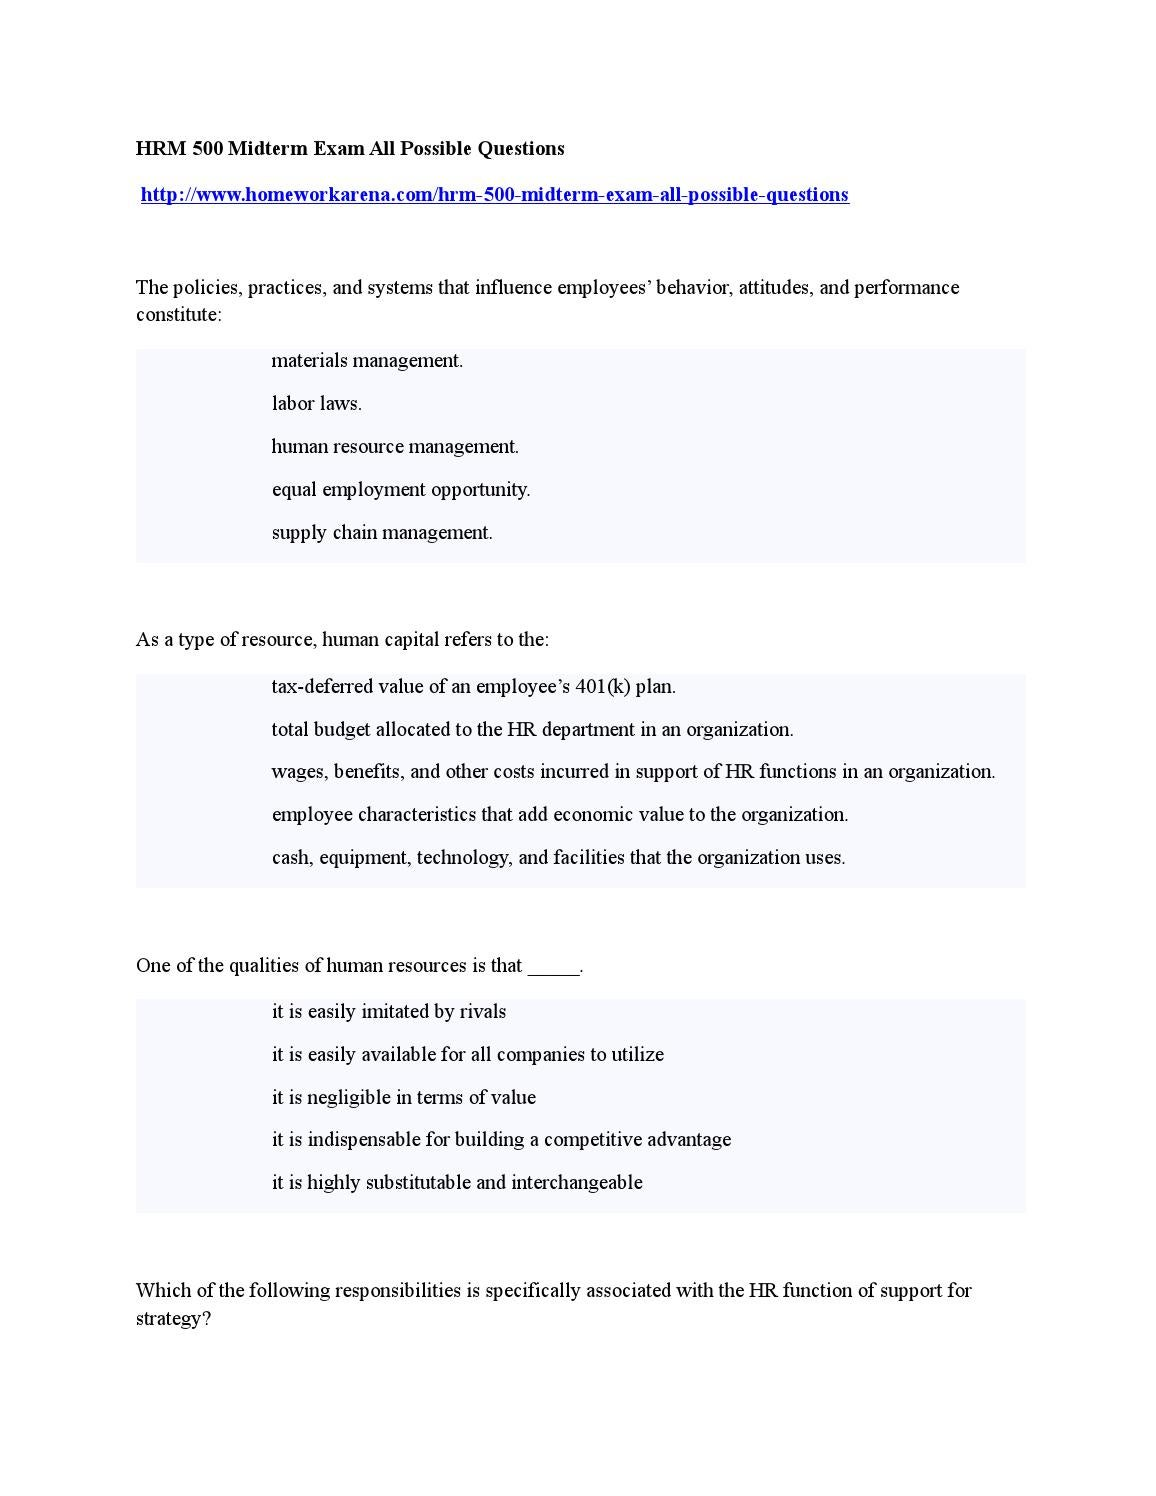 Hrm 500 midterm exam all possible questions by HomeworkStock - issuu